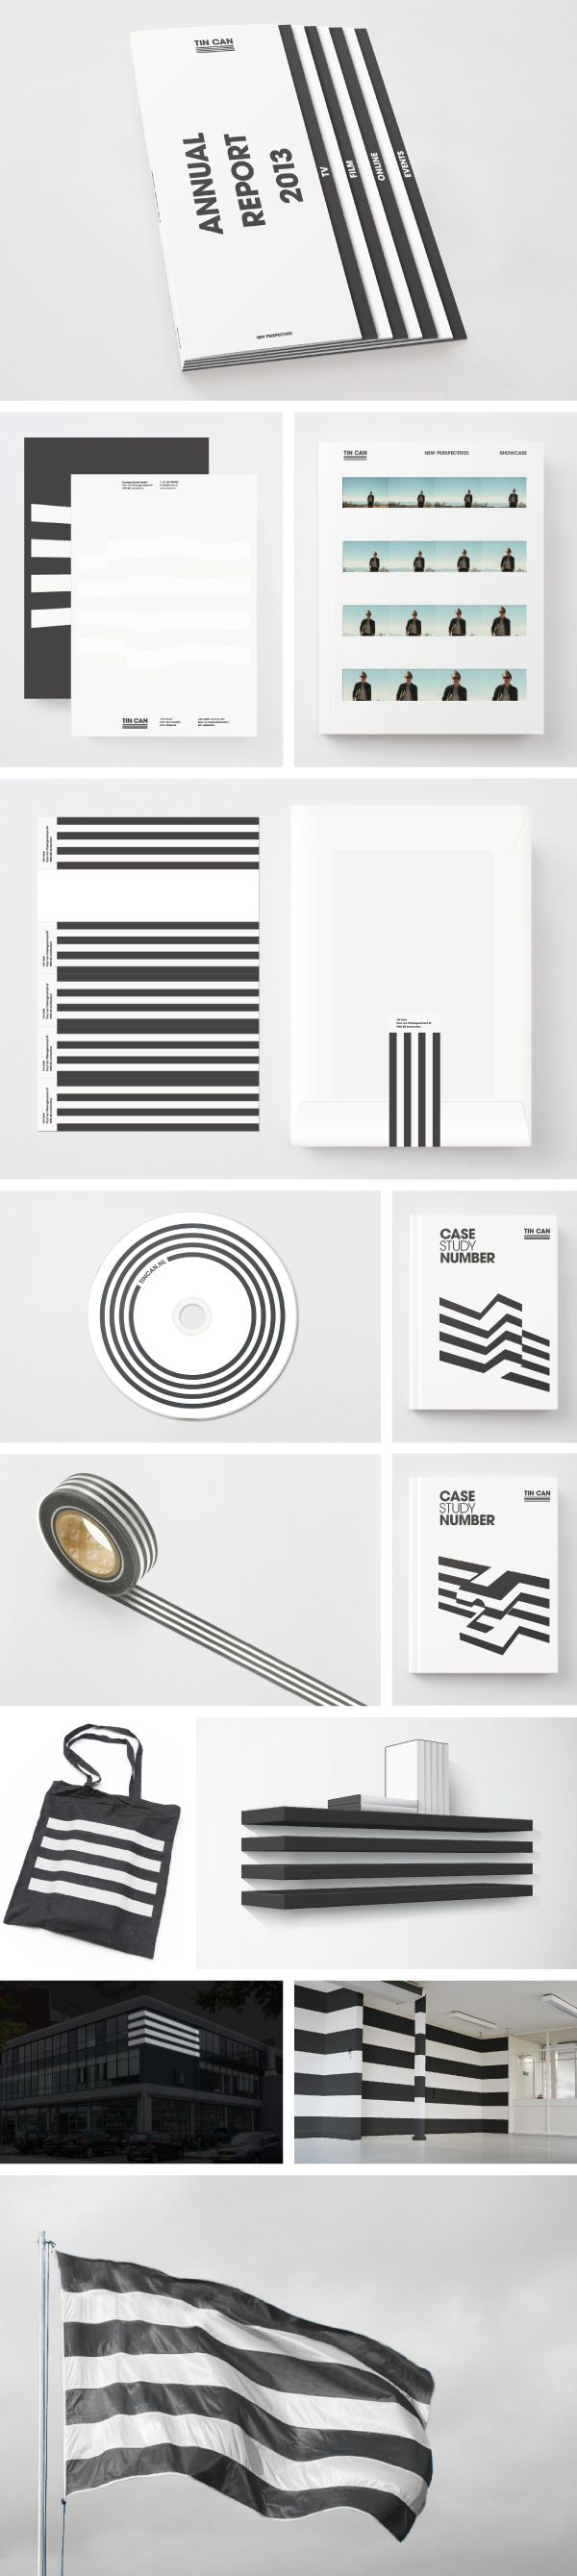 TIN CAN #packaging #branding #marketing PD